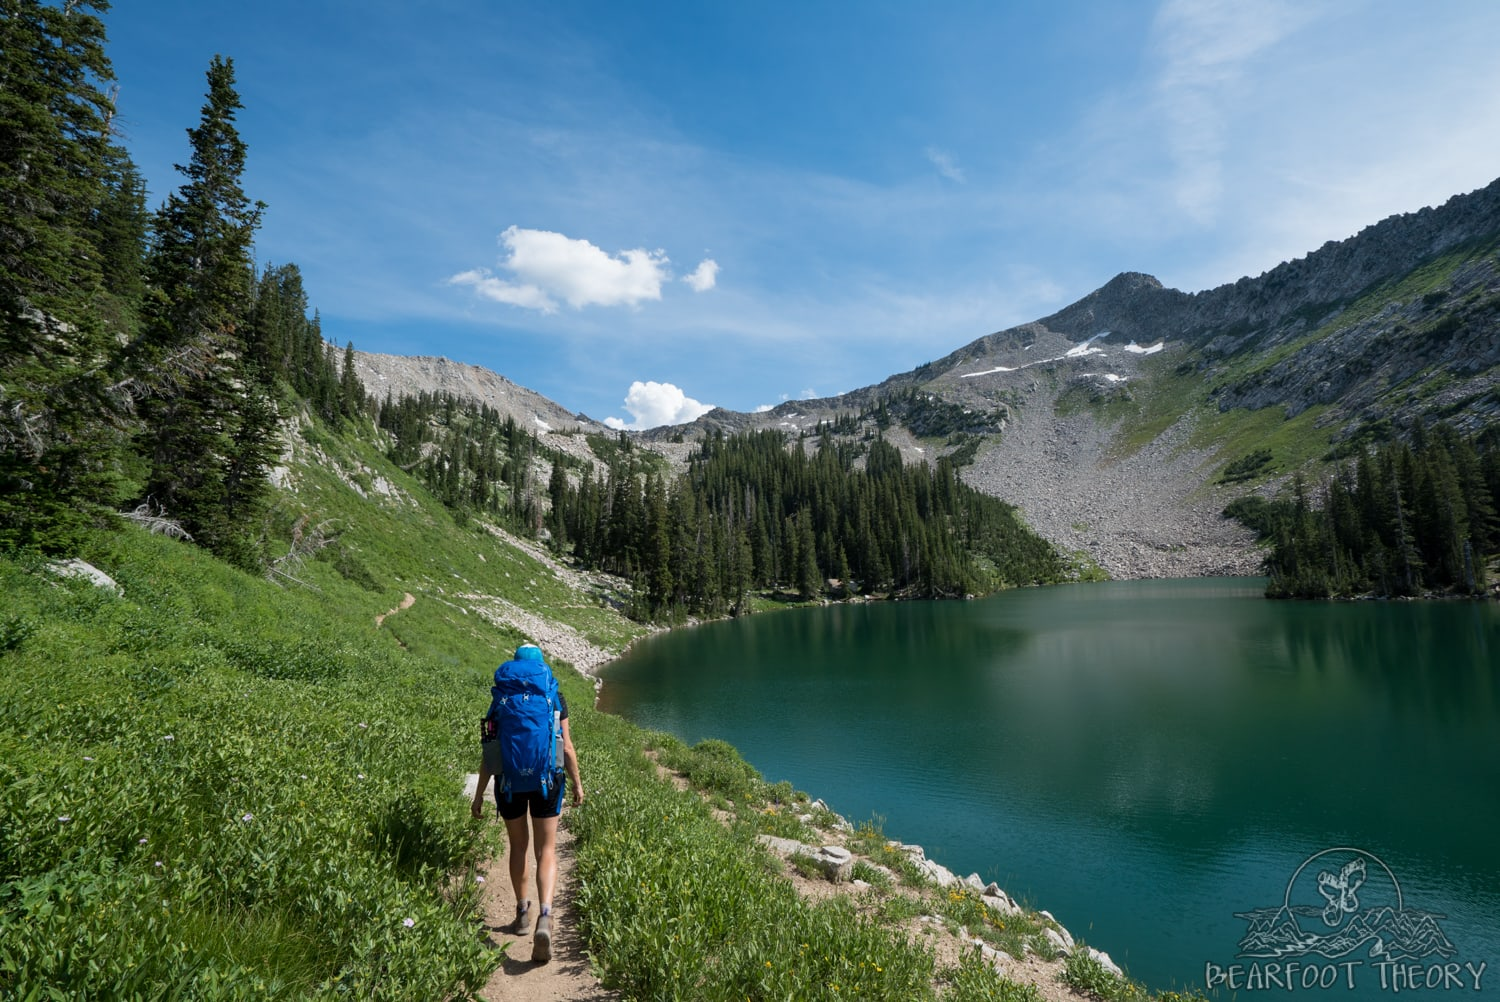 Backpacking and Hiking Guide to Salt Lake City's Red Pine Lake